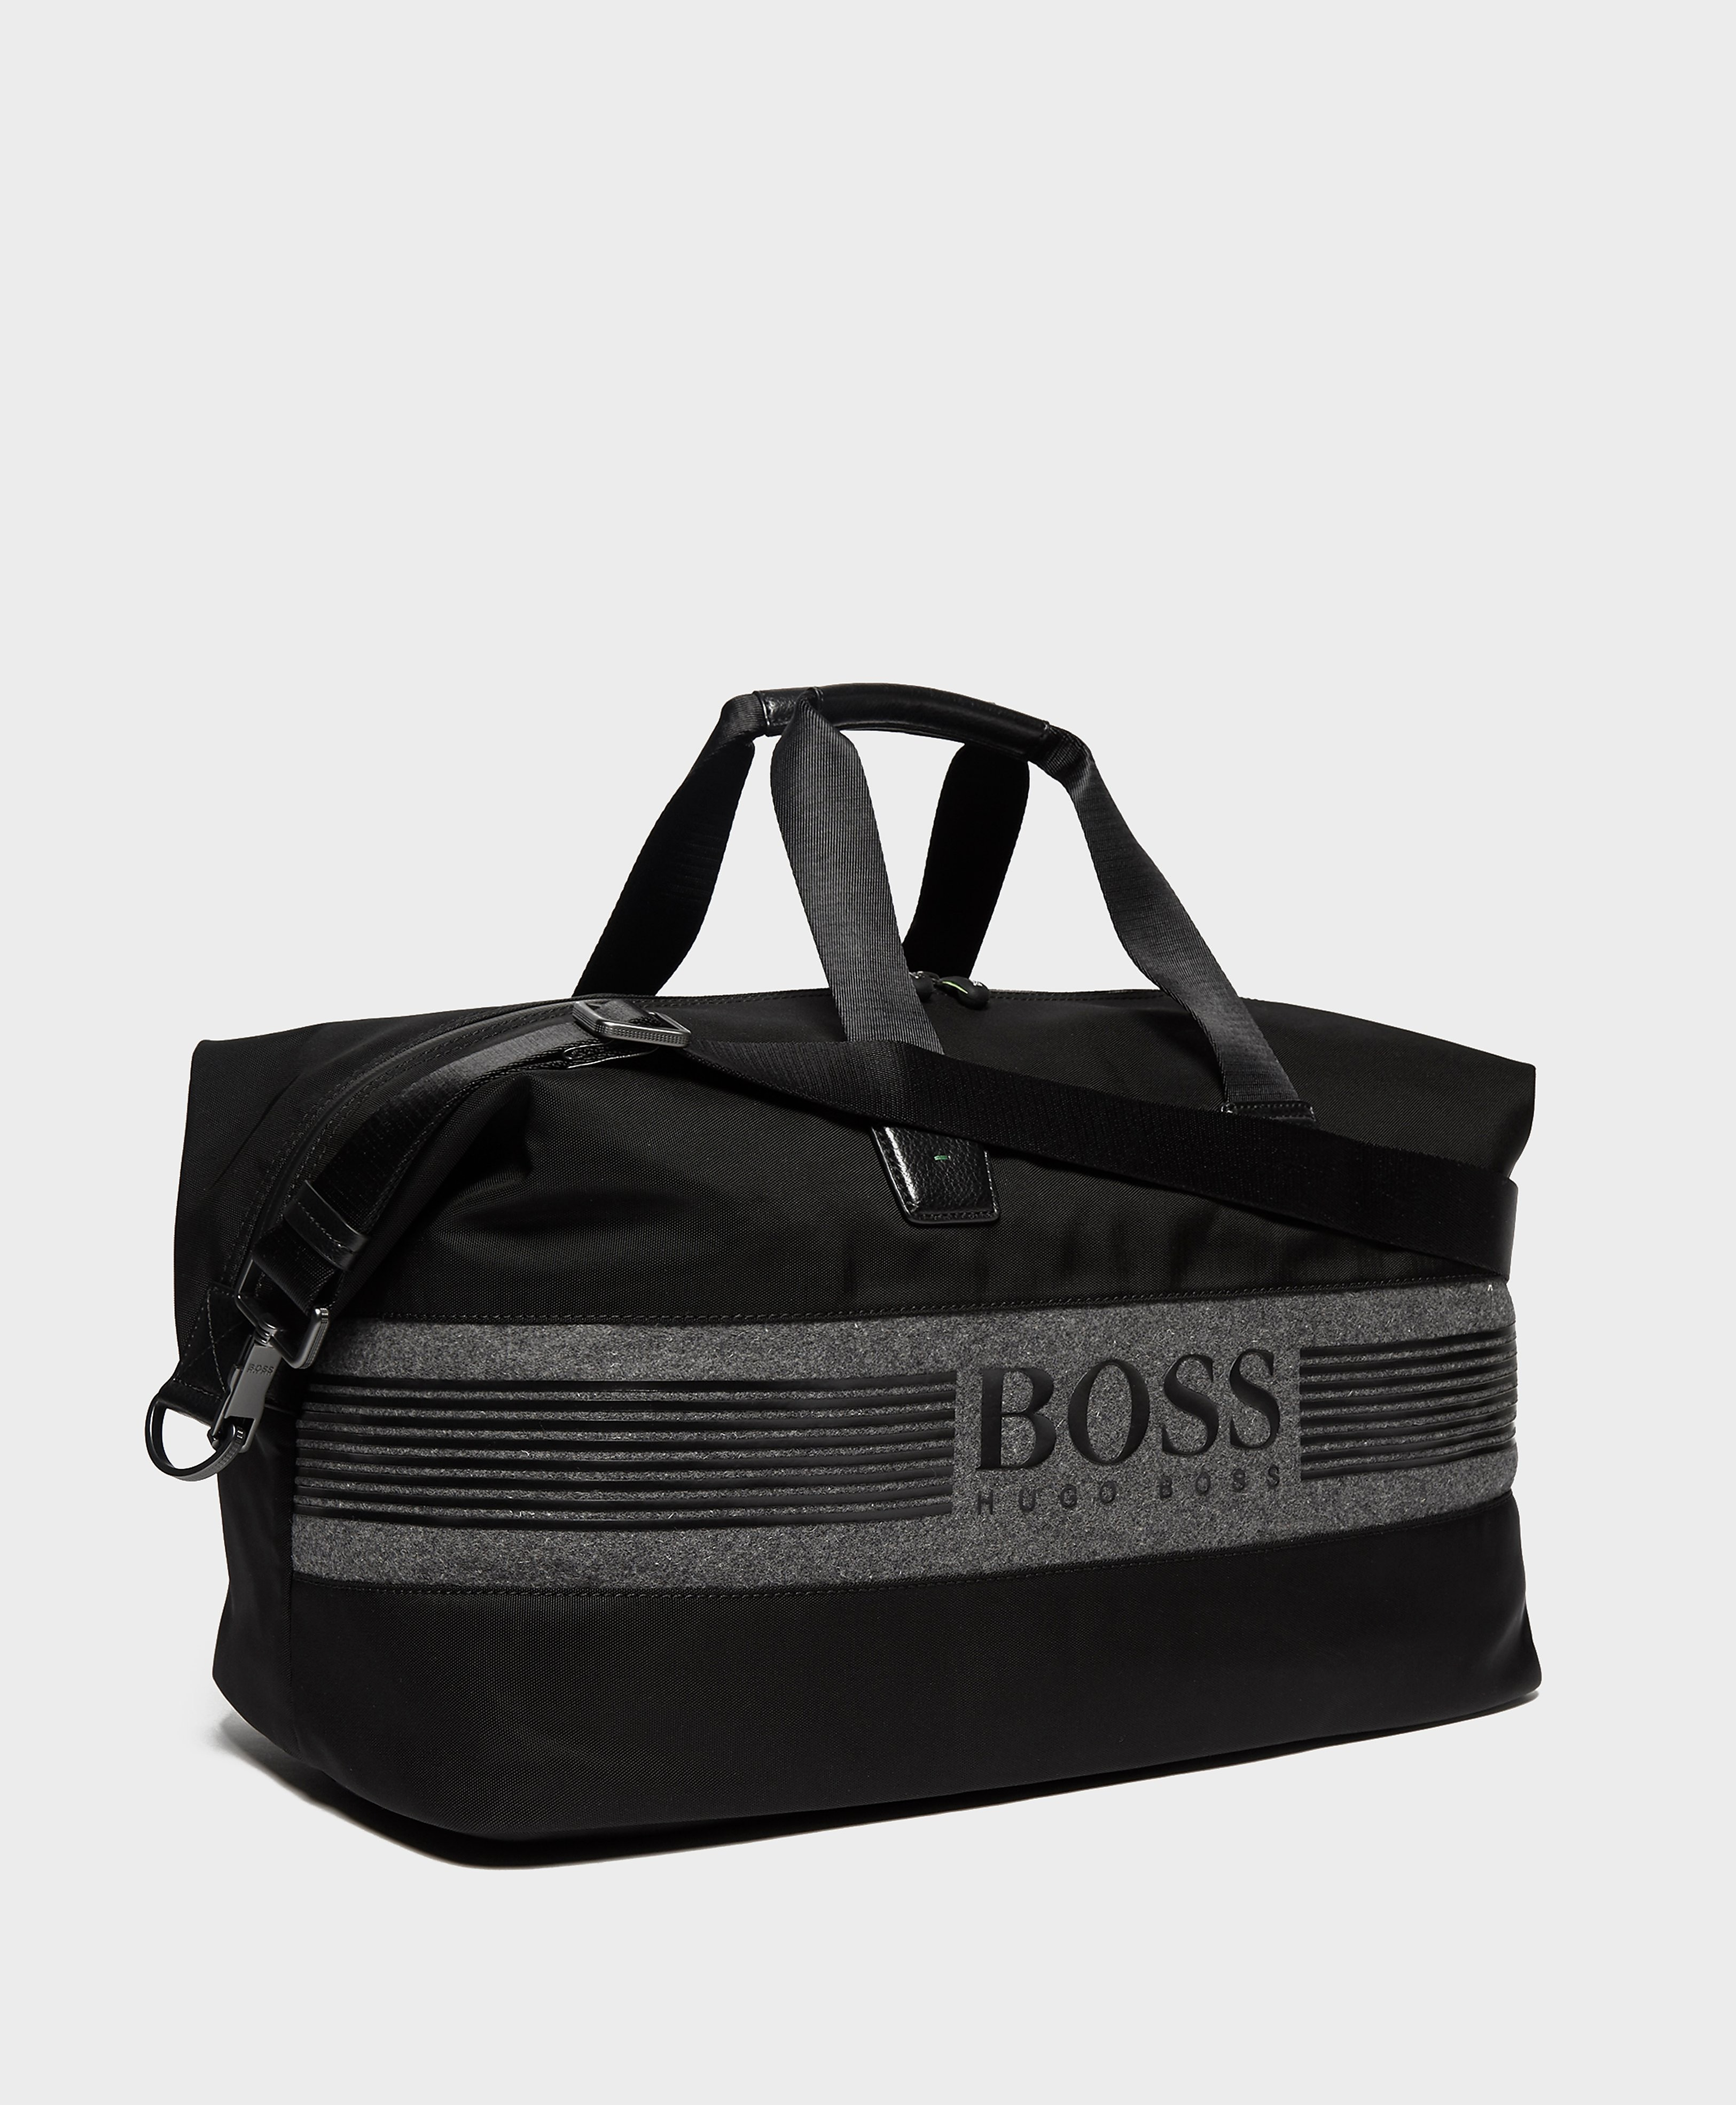 BOSS Pixel Grip Bag